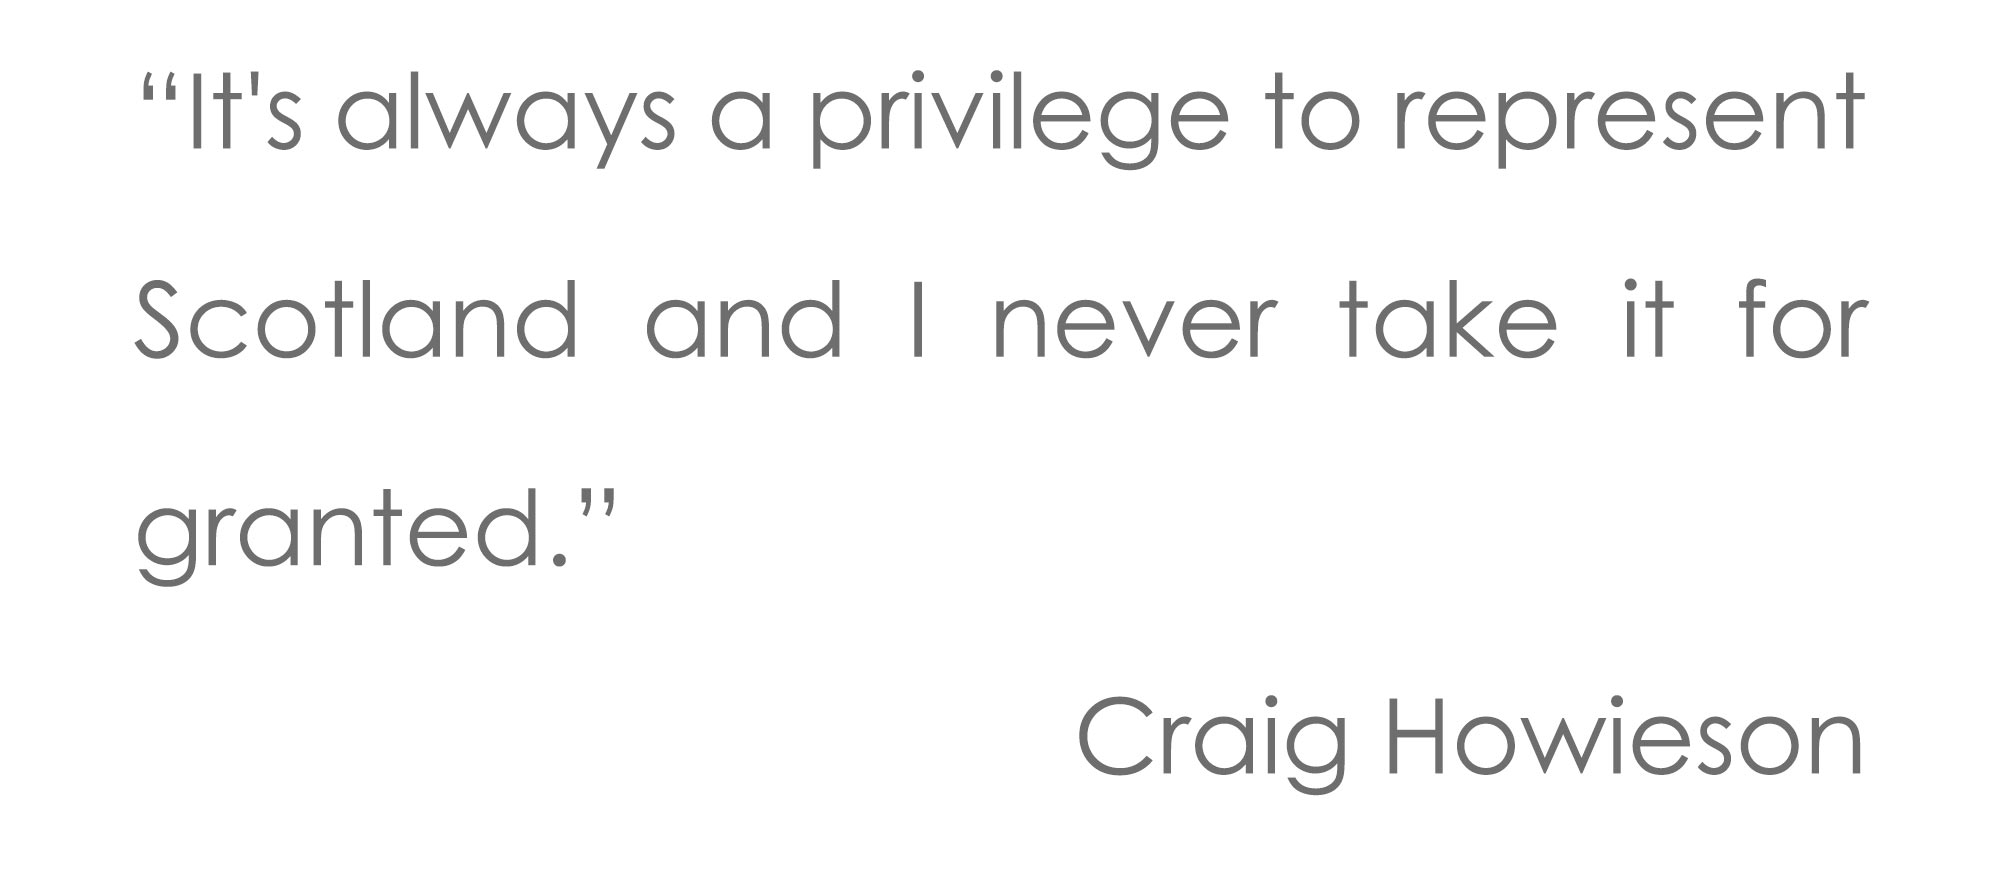 Craig-Howieson-quote-25pt-text.jpg